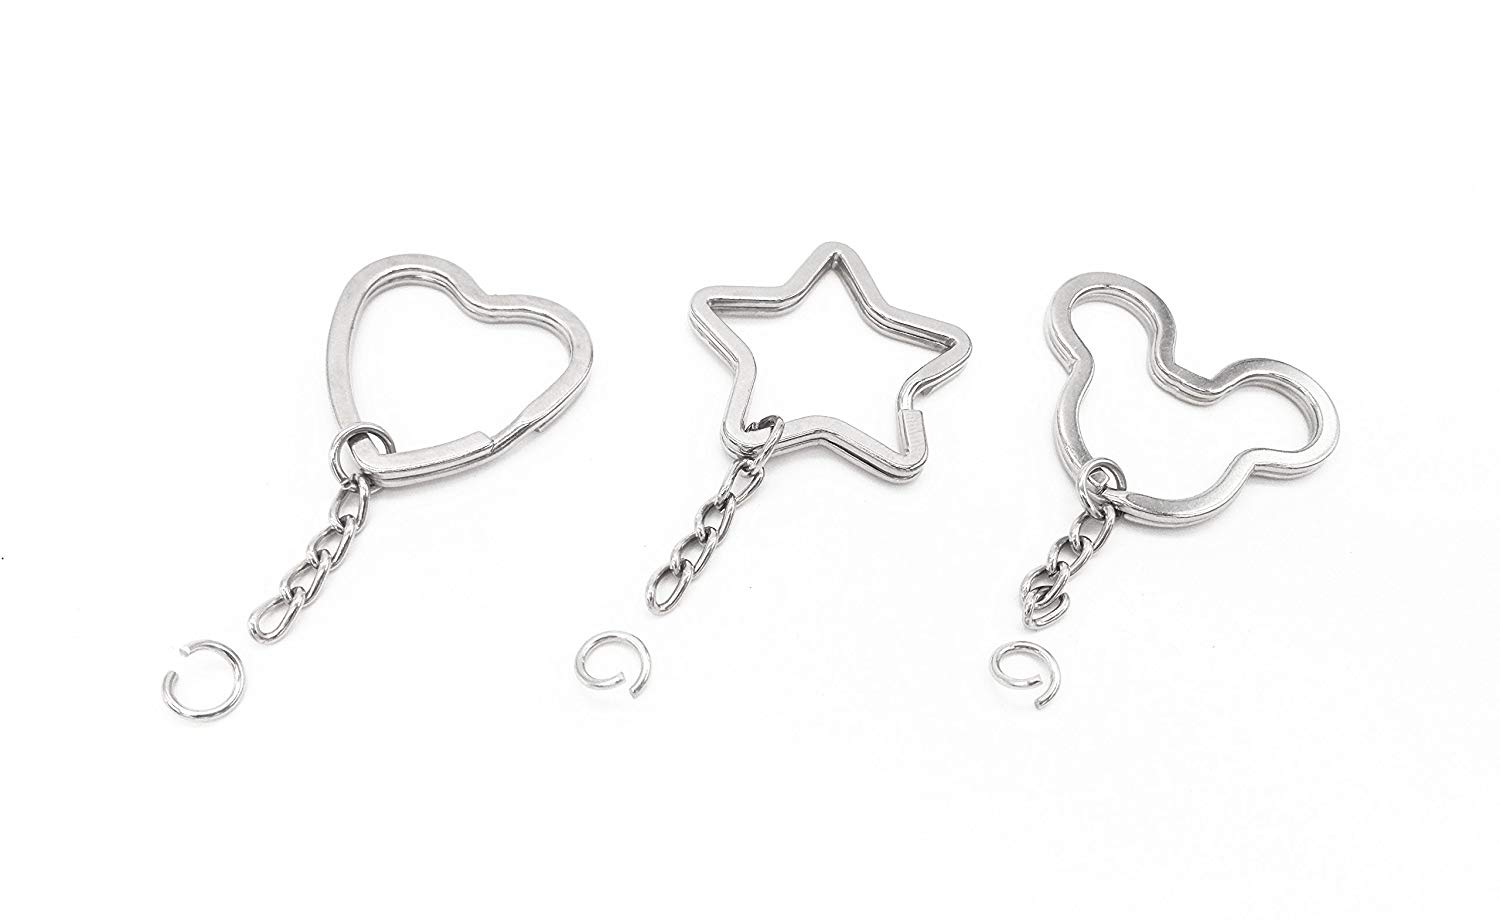 30 PCS Split Key Ring with Chain, Key Chain Parts, 3 Mix Styles, Star-Shaped, Bear-Shaped and Heart-Shaped Rings